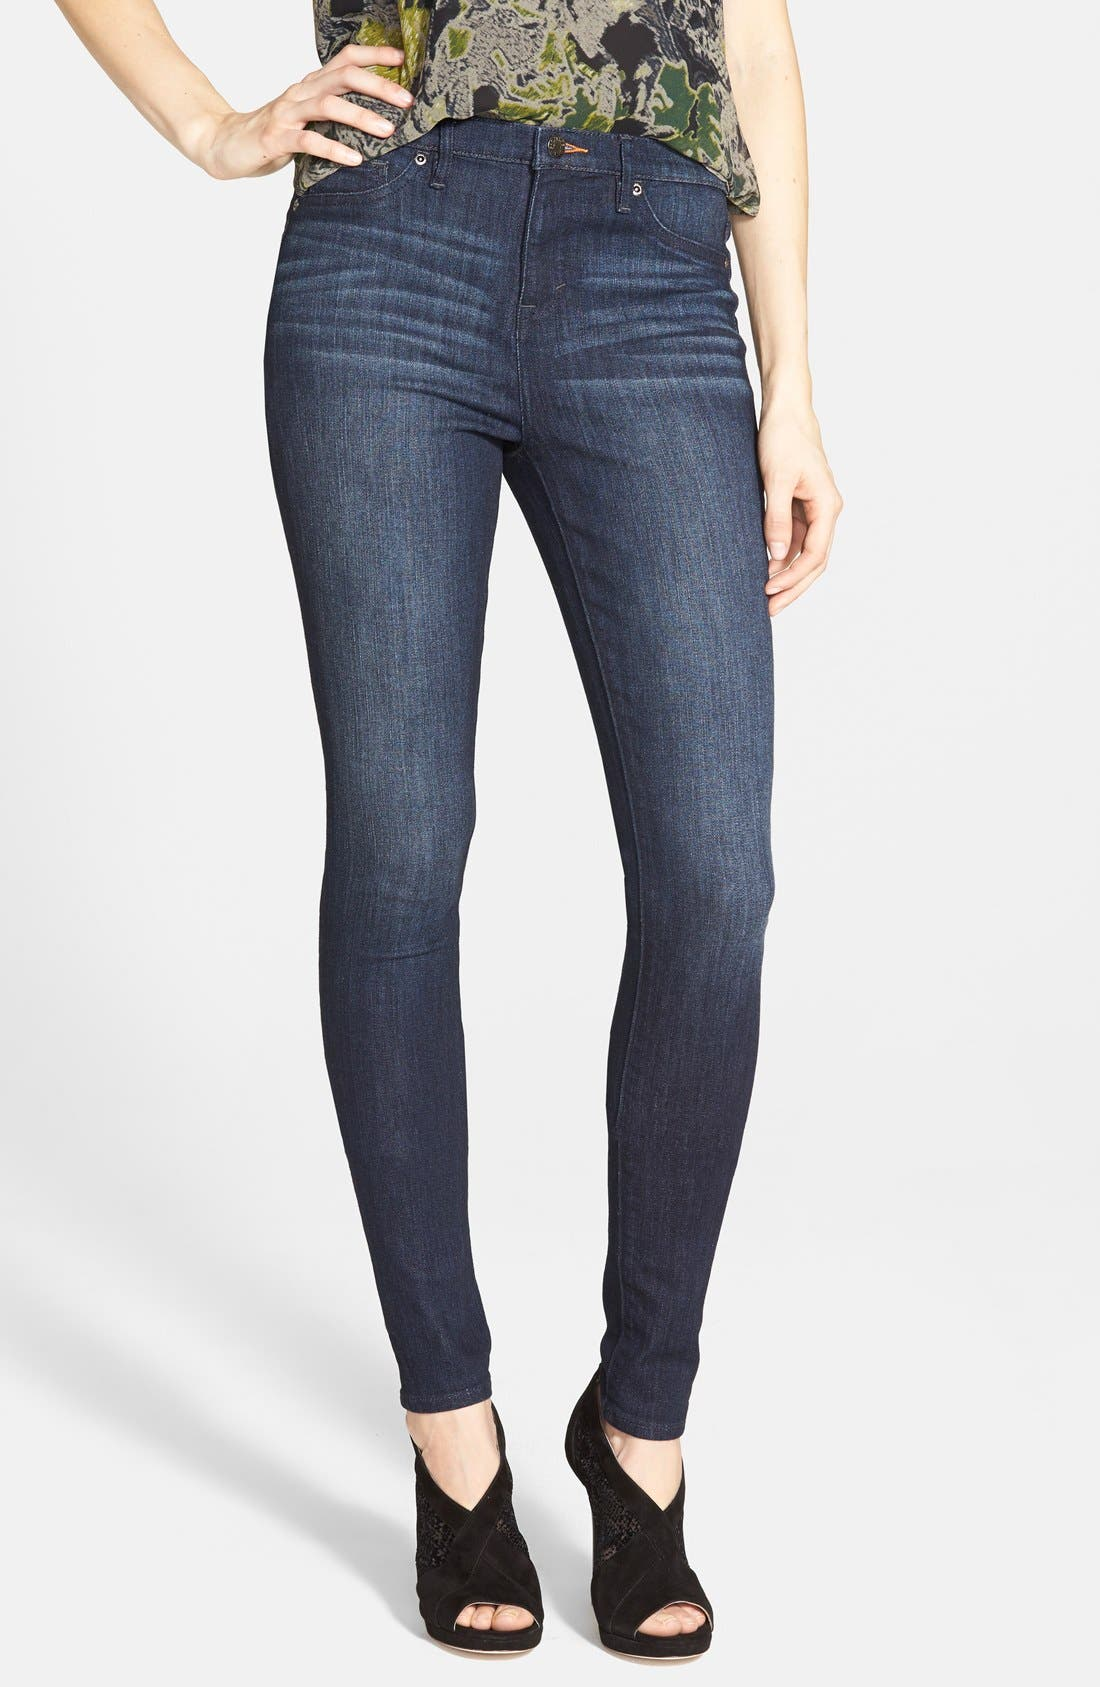 Main Image - Dittos Mid Rise Super Skinny Jeans (Blue)